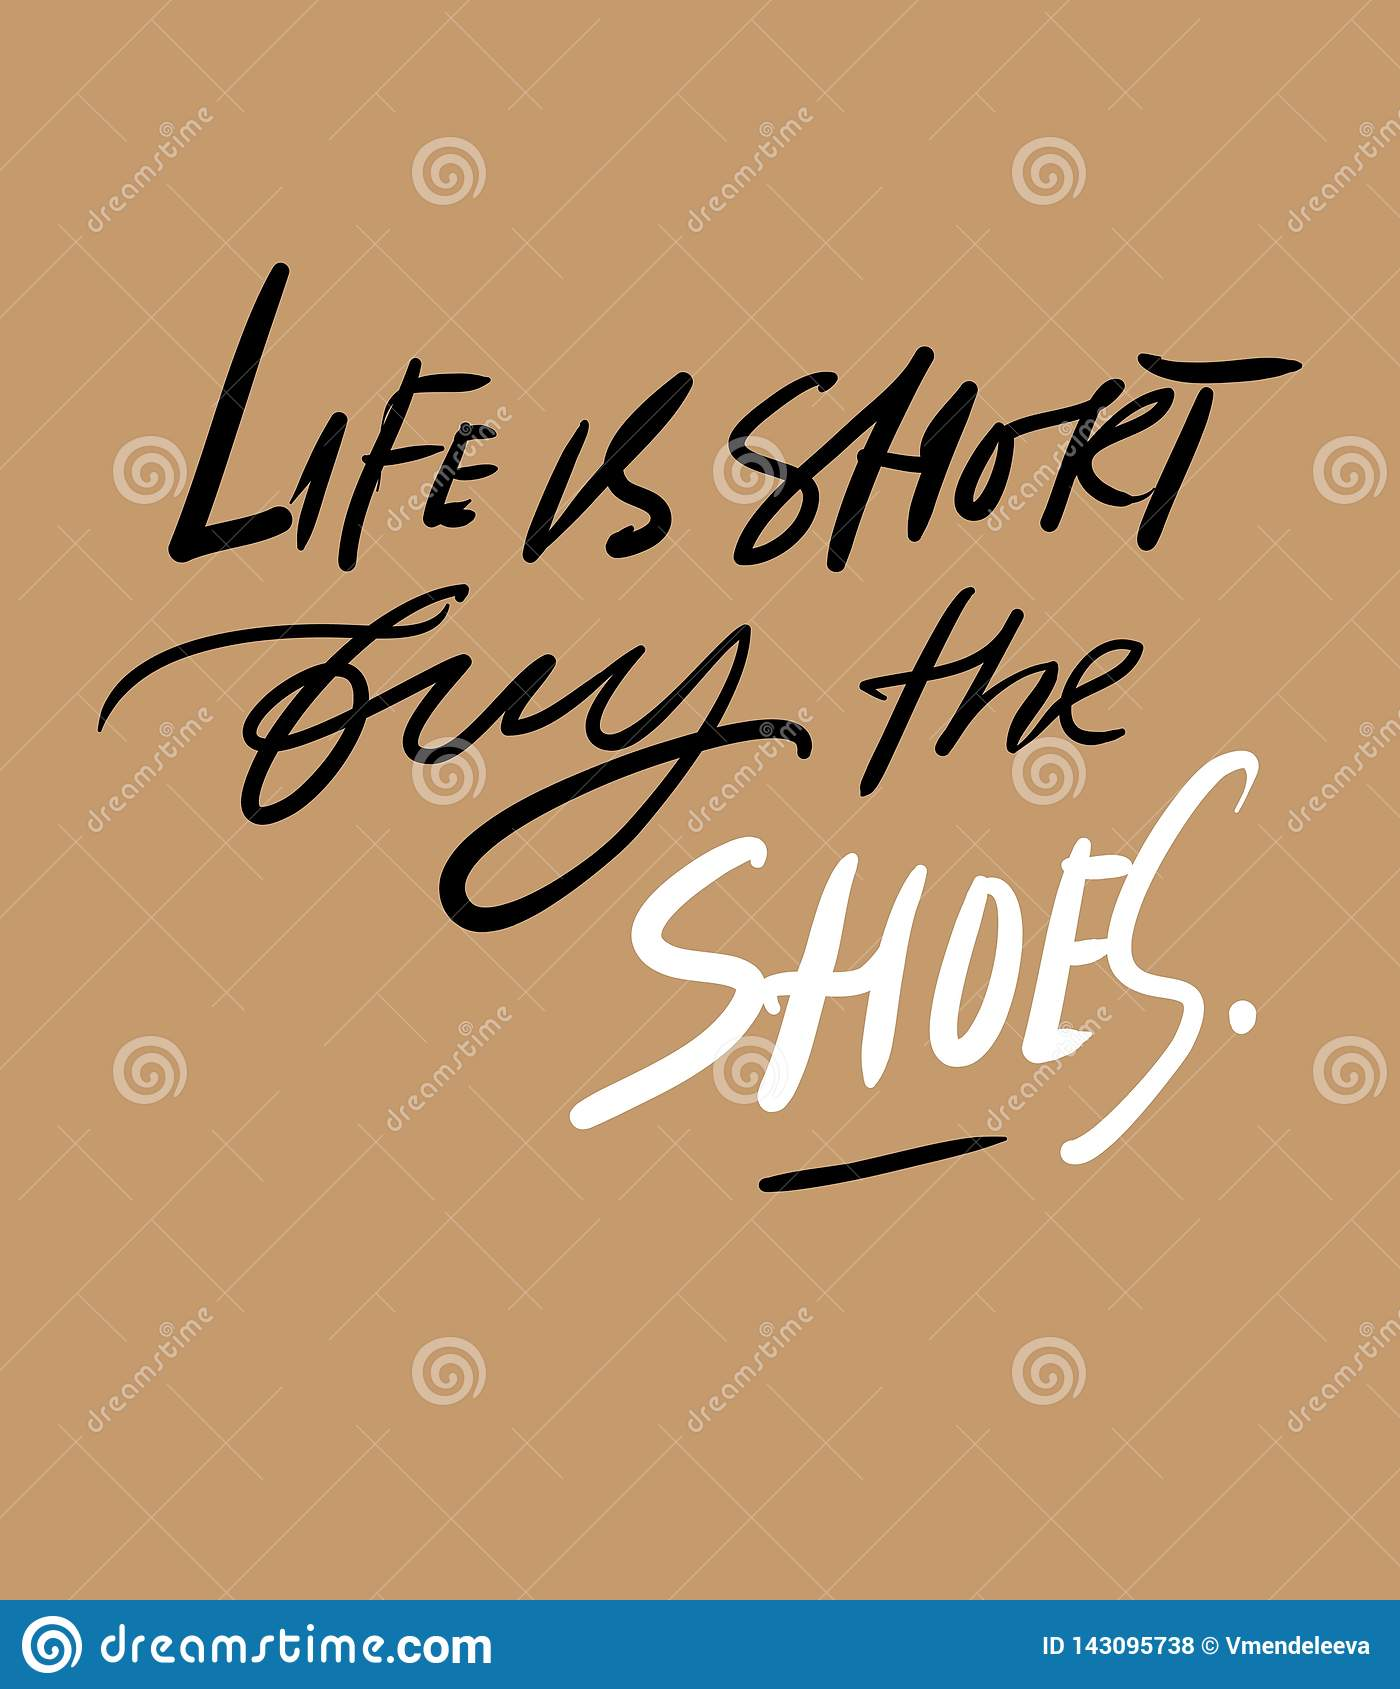 Quotes About Shoes. Hand Lettering Fpr Your Design. Stock ...